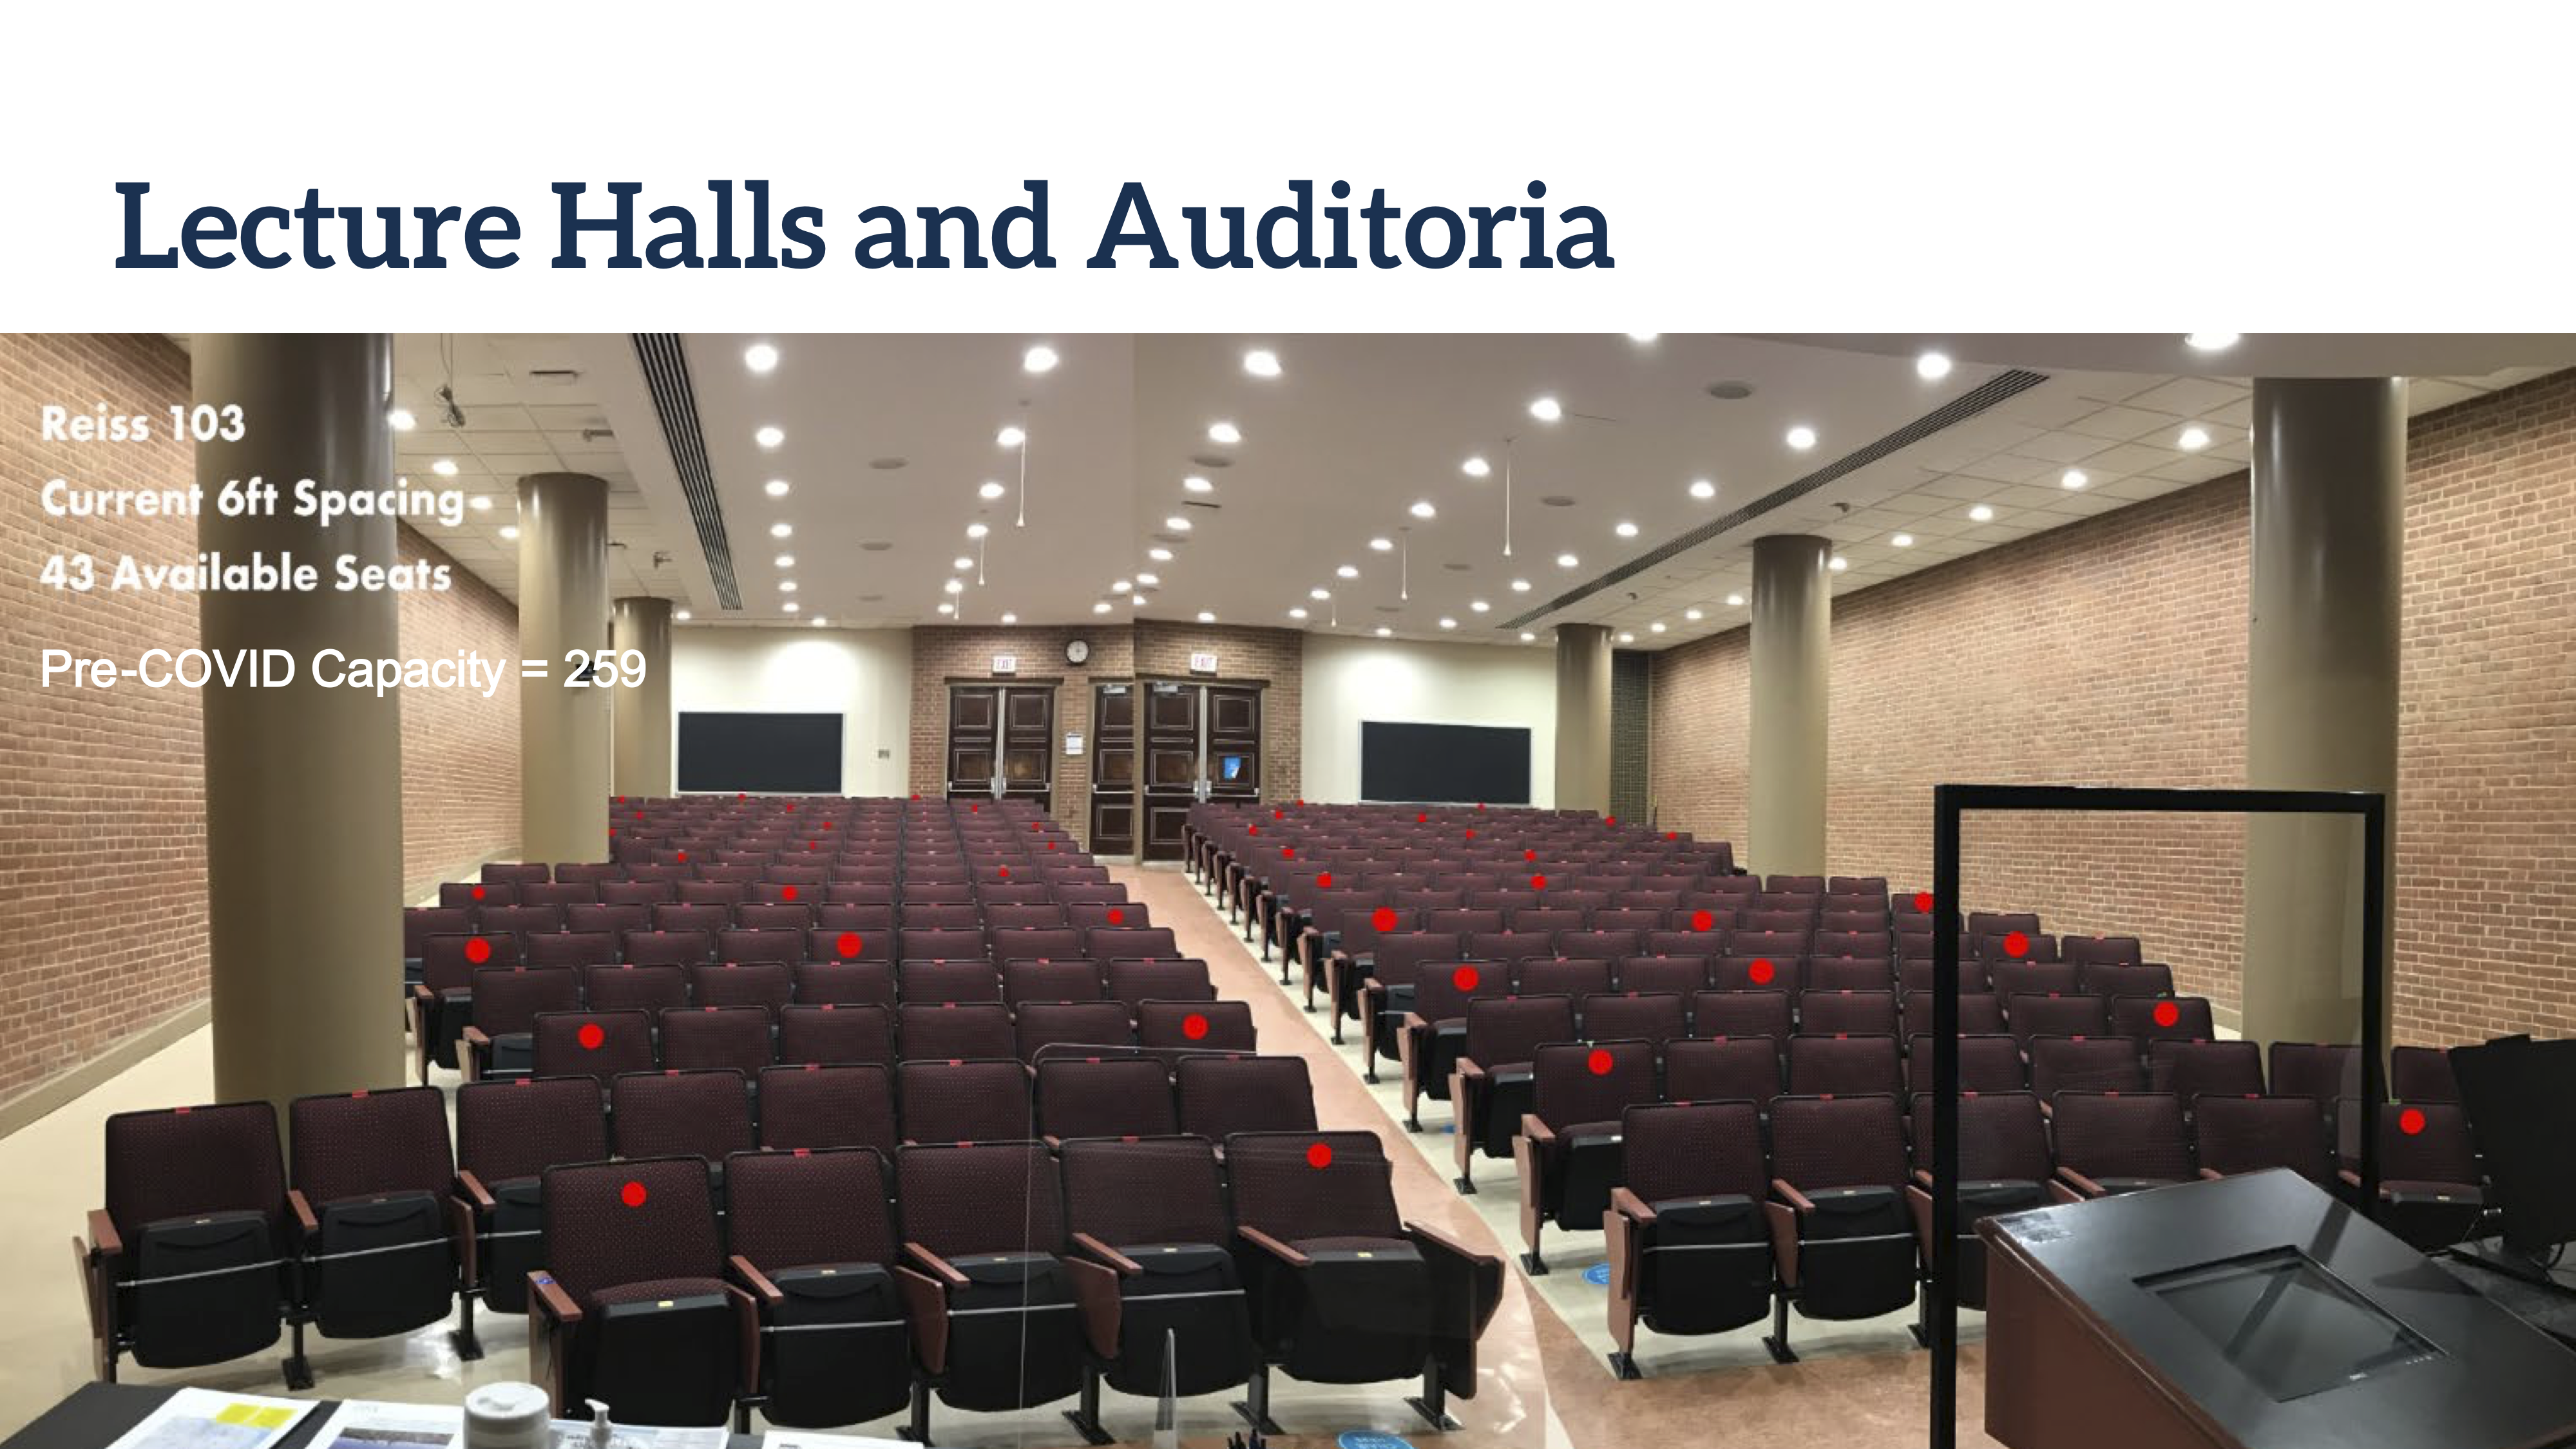 Picture of 6ft Spacing in Lecture Hall and Auditoria